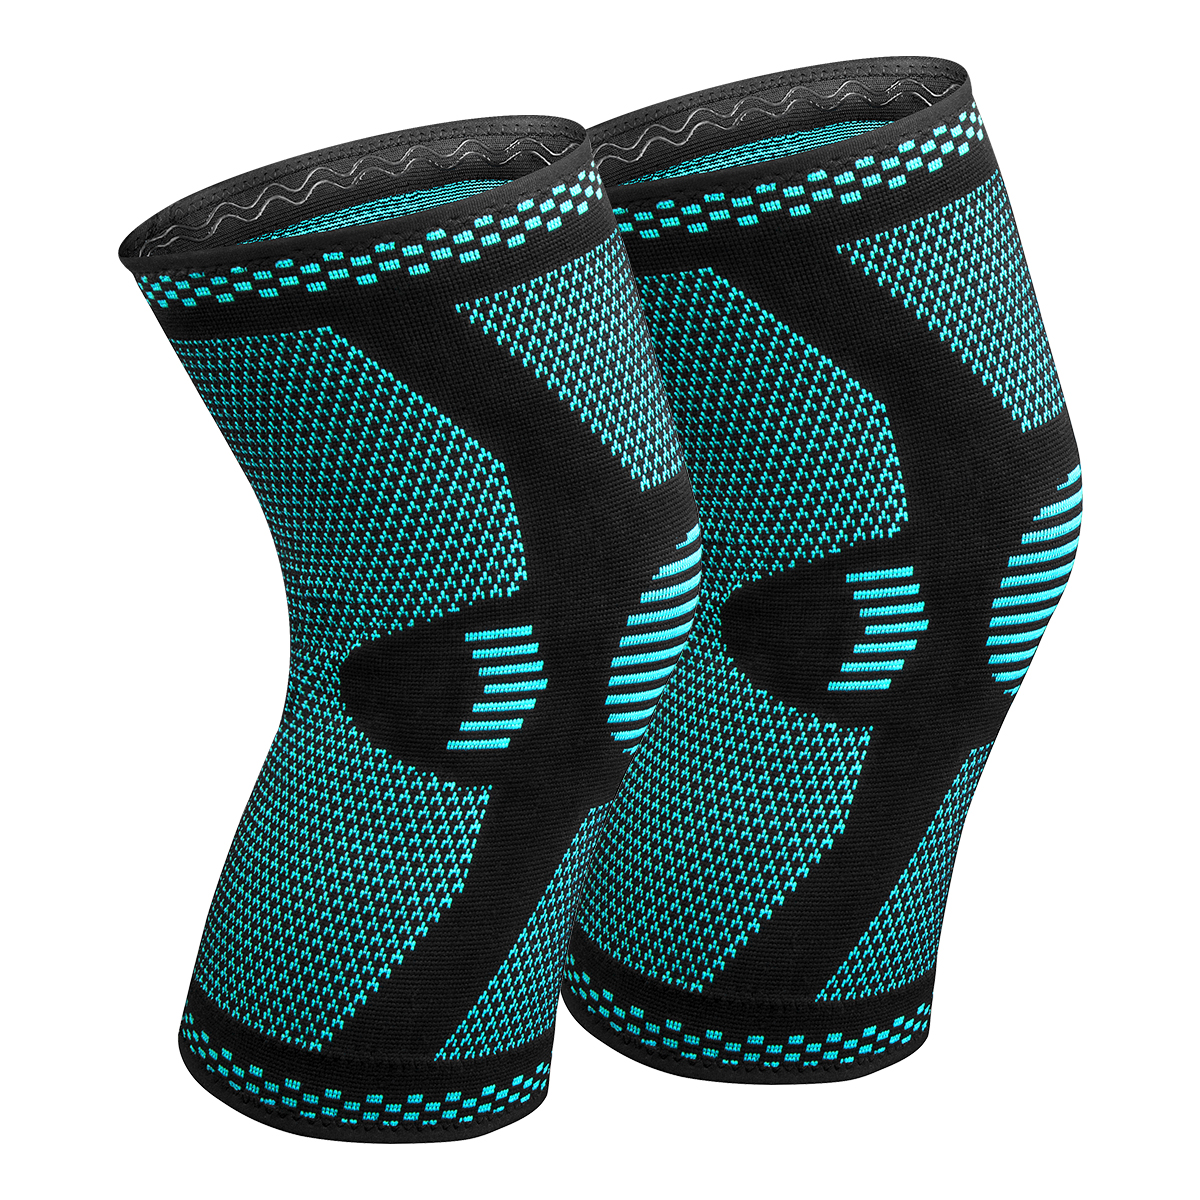 Knee Support For Men Women Avidda Ultra Compression Knee Sleeve For Arthritis Pain Relief Meniscus Tear Nonslip Sport Knee Brace For Running Squats Crossfit Weight Lifting Football Basketball Knee Brace Sports